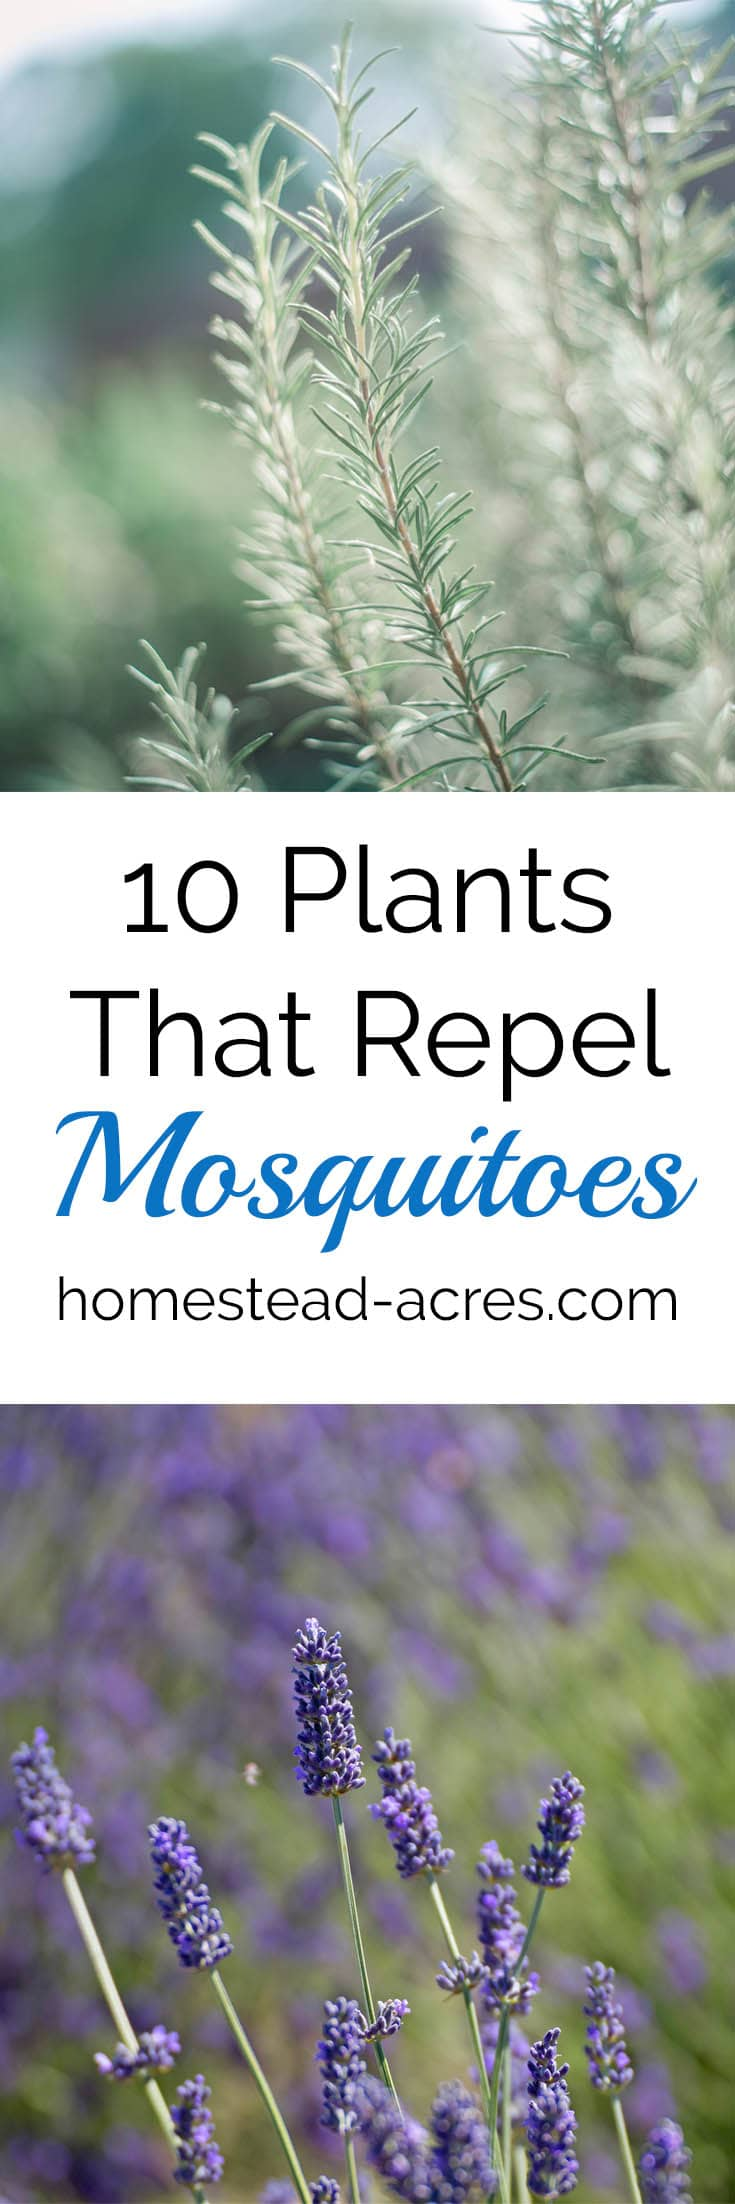 10 Plants That Repel Mosquitoes. Easy to grow flowers and herbs to help keep mosquitoes away. www.homestead-acres.com